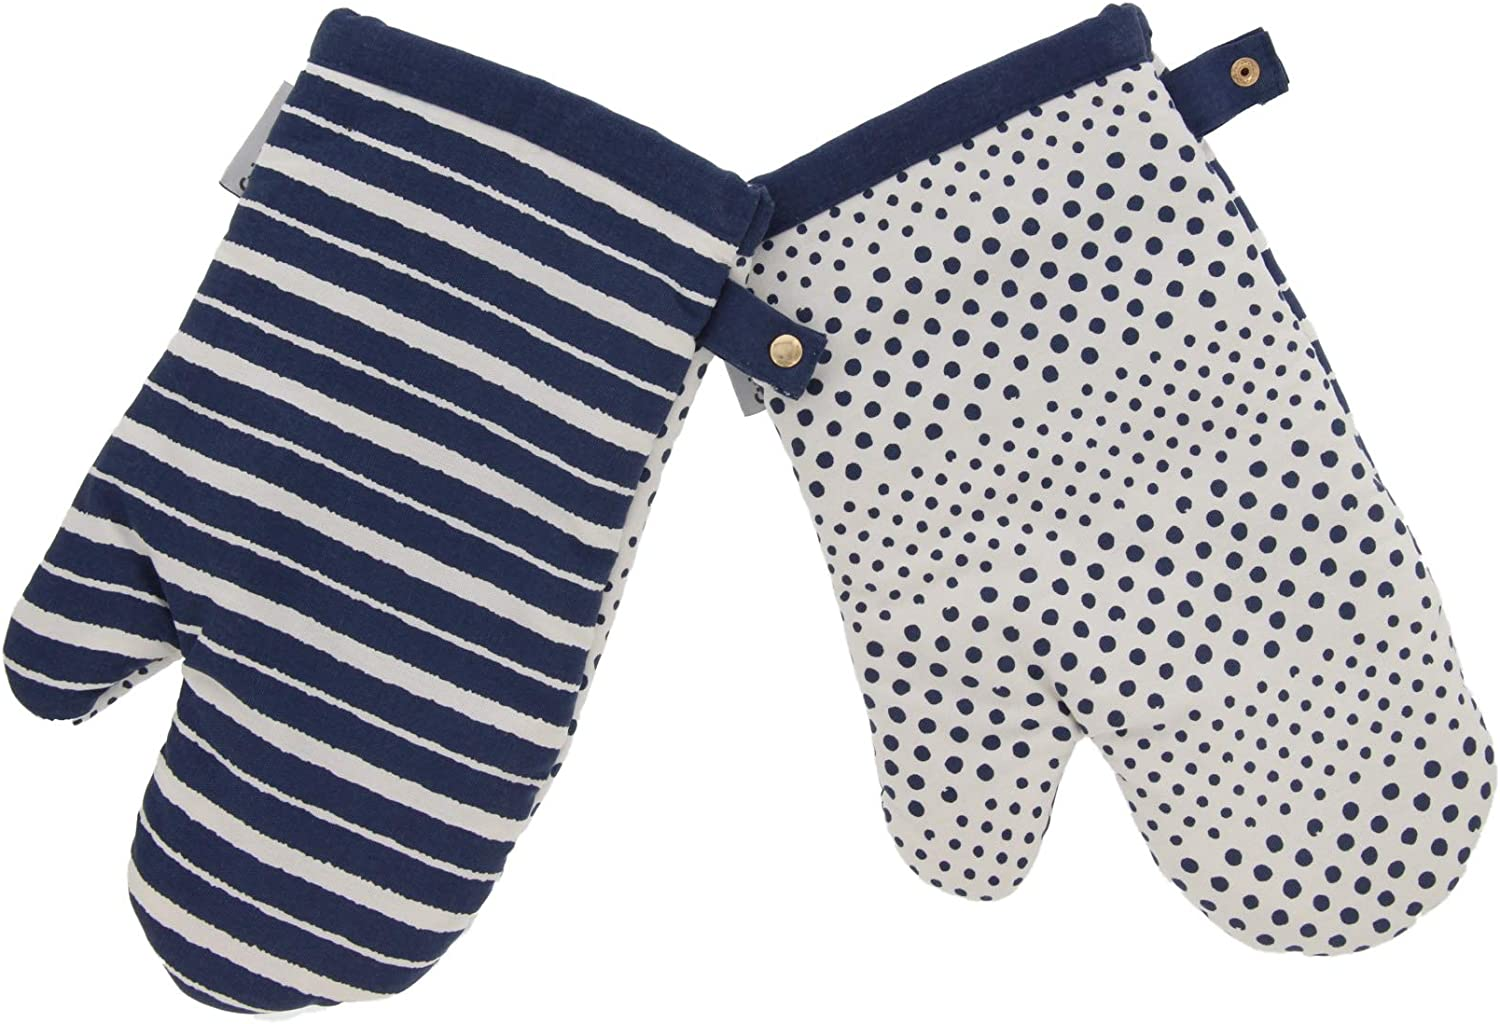 Cuisinart Reversible Print Oven Mitts, 2pk - Heat Resistant Oven Gloves Provide Protection and Safe Insulation to Handle Hot Kitchen Items - Non Slip Oven Mitt Set with Hanging Loop - Bering Sea Blue